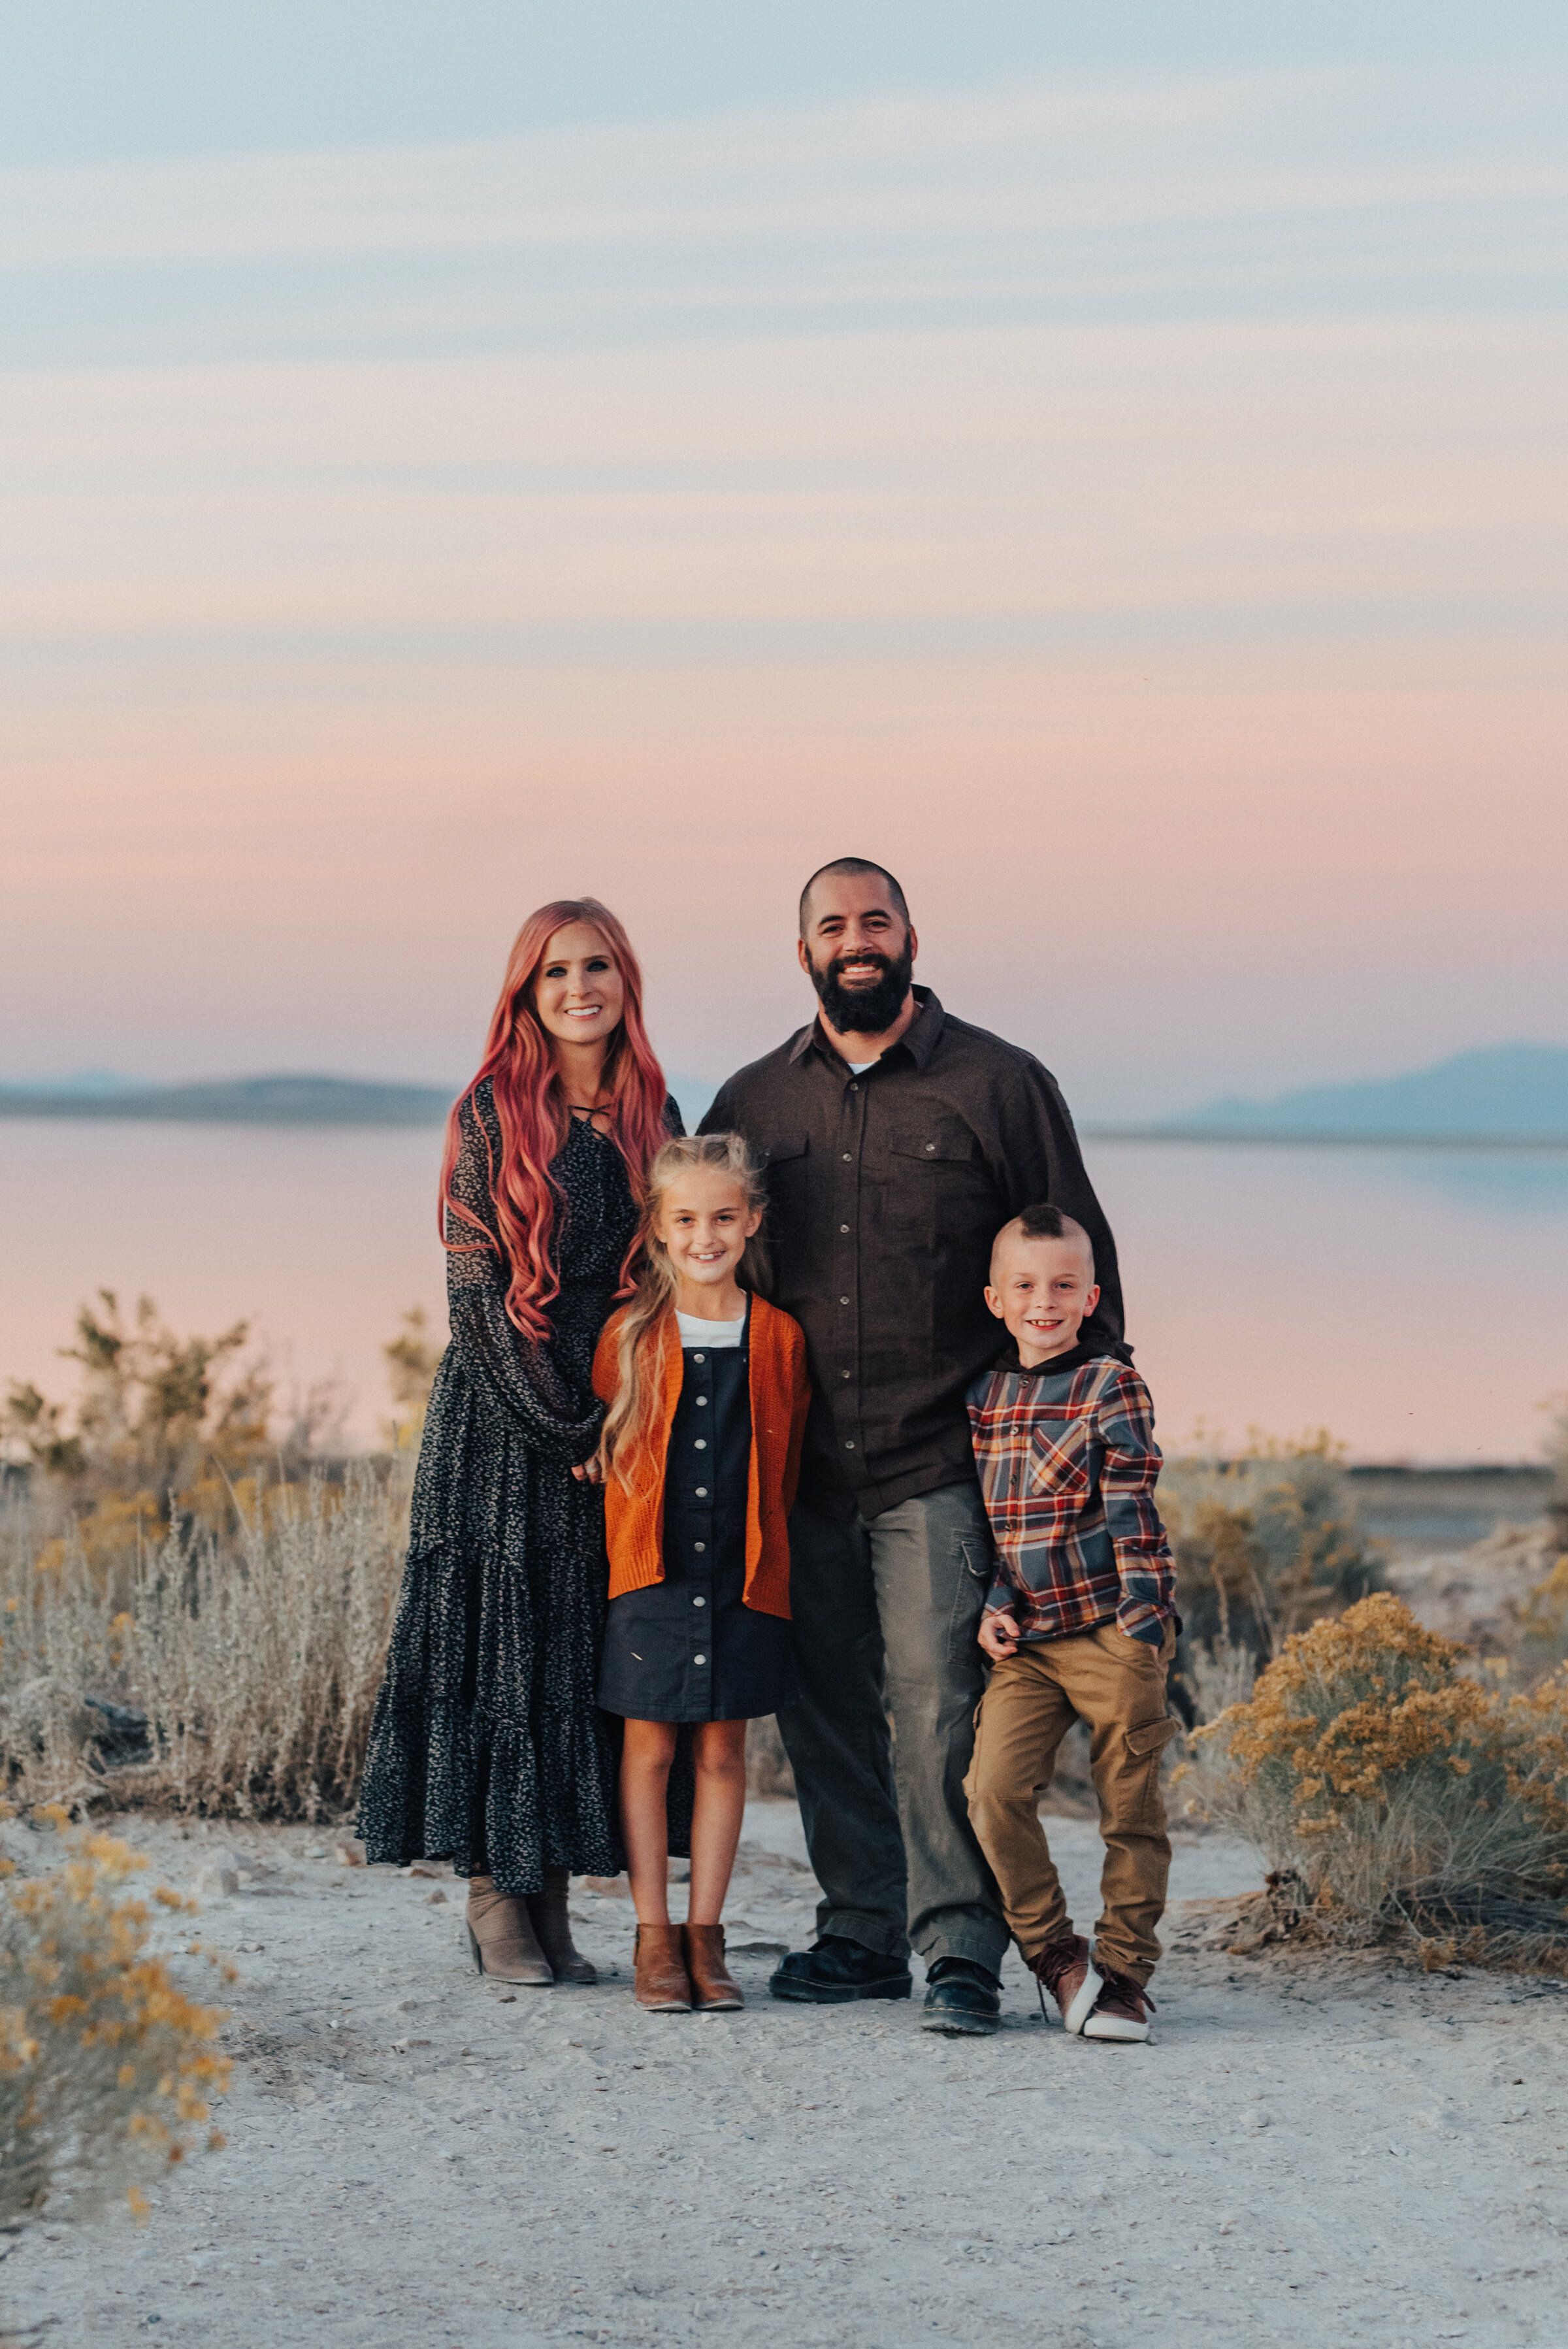 A beautiful family standing on Antelope Island beach at sun set in a professional photo shoot by Kristi Alyse Photography. Family goals fall client attire inspiration family pose inspiration ideas and goals unique family photo shoot pink hair and a pho hawk fall outdoor photo shoot goals professional Utah Photographer #familypictures #utahphotographer #antelopeisland #outfitinspo #familypics #familyphotographer #pinkhair #saltlakecityphotog #slcfamilypictures